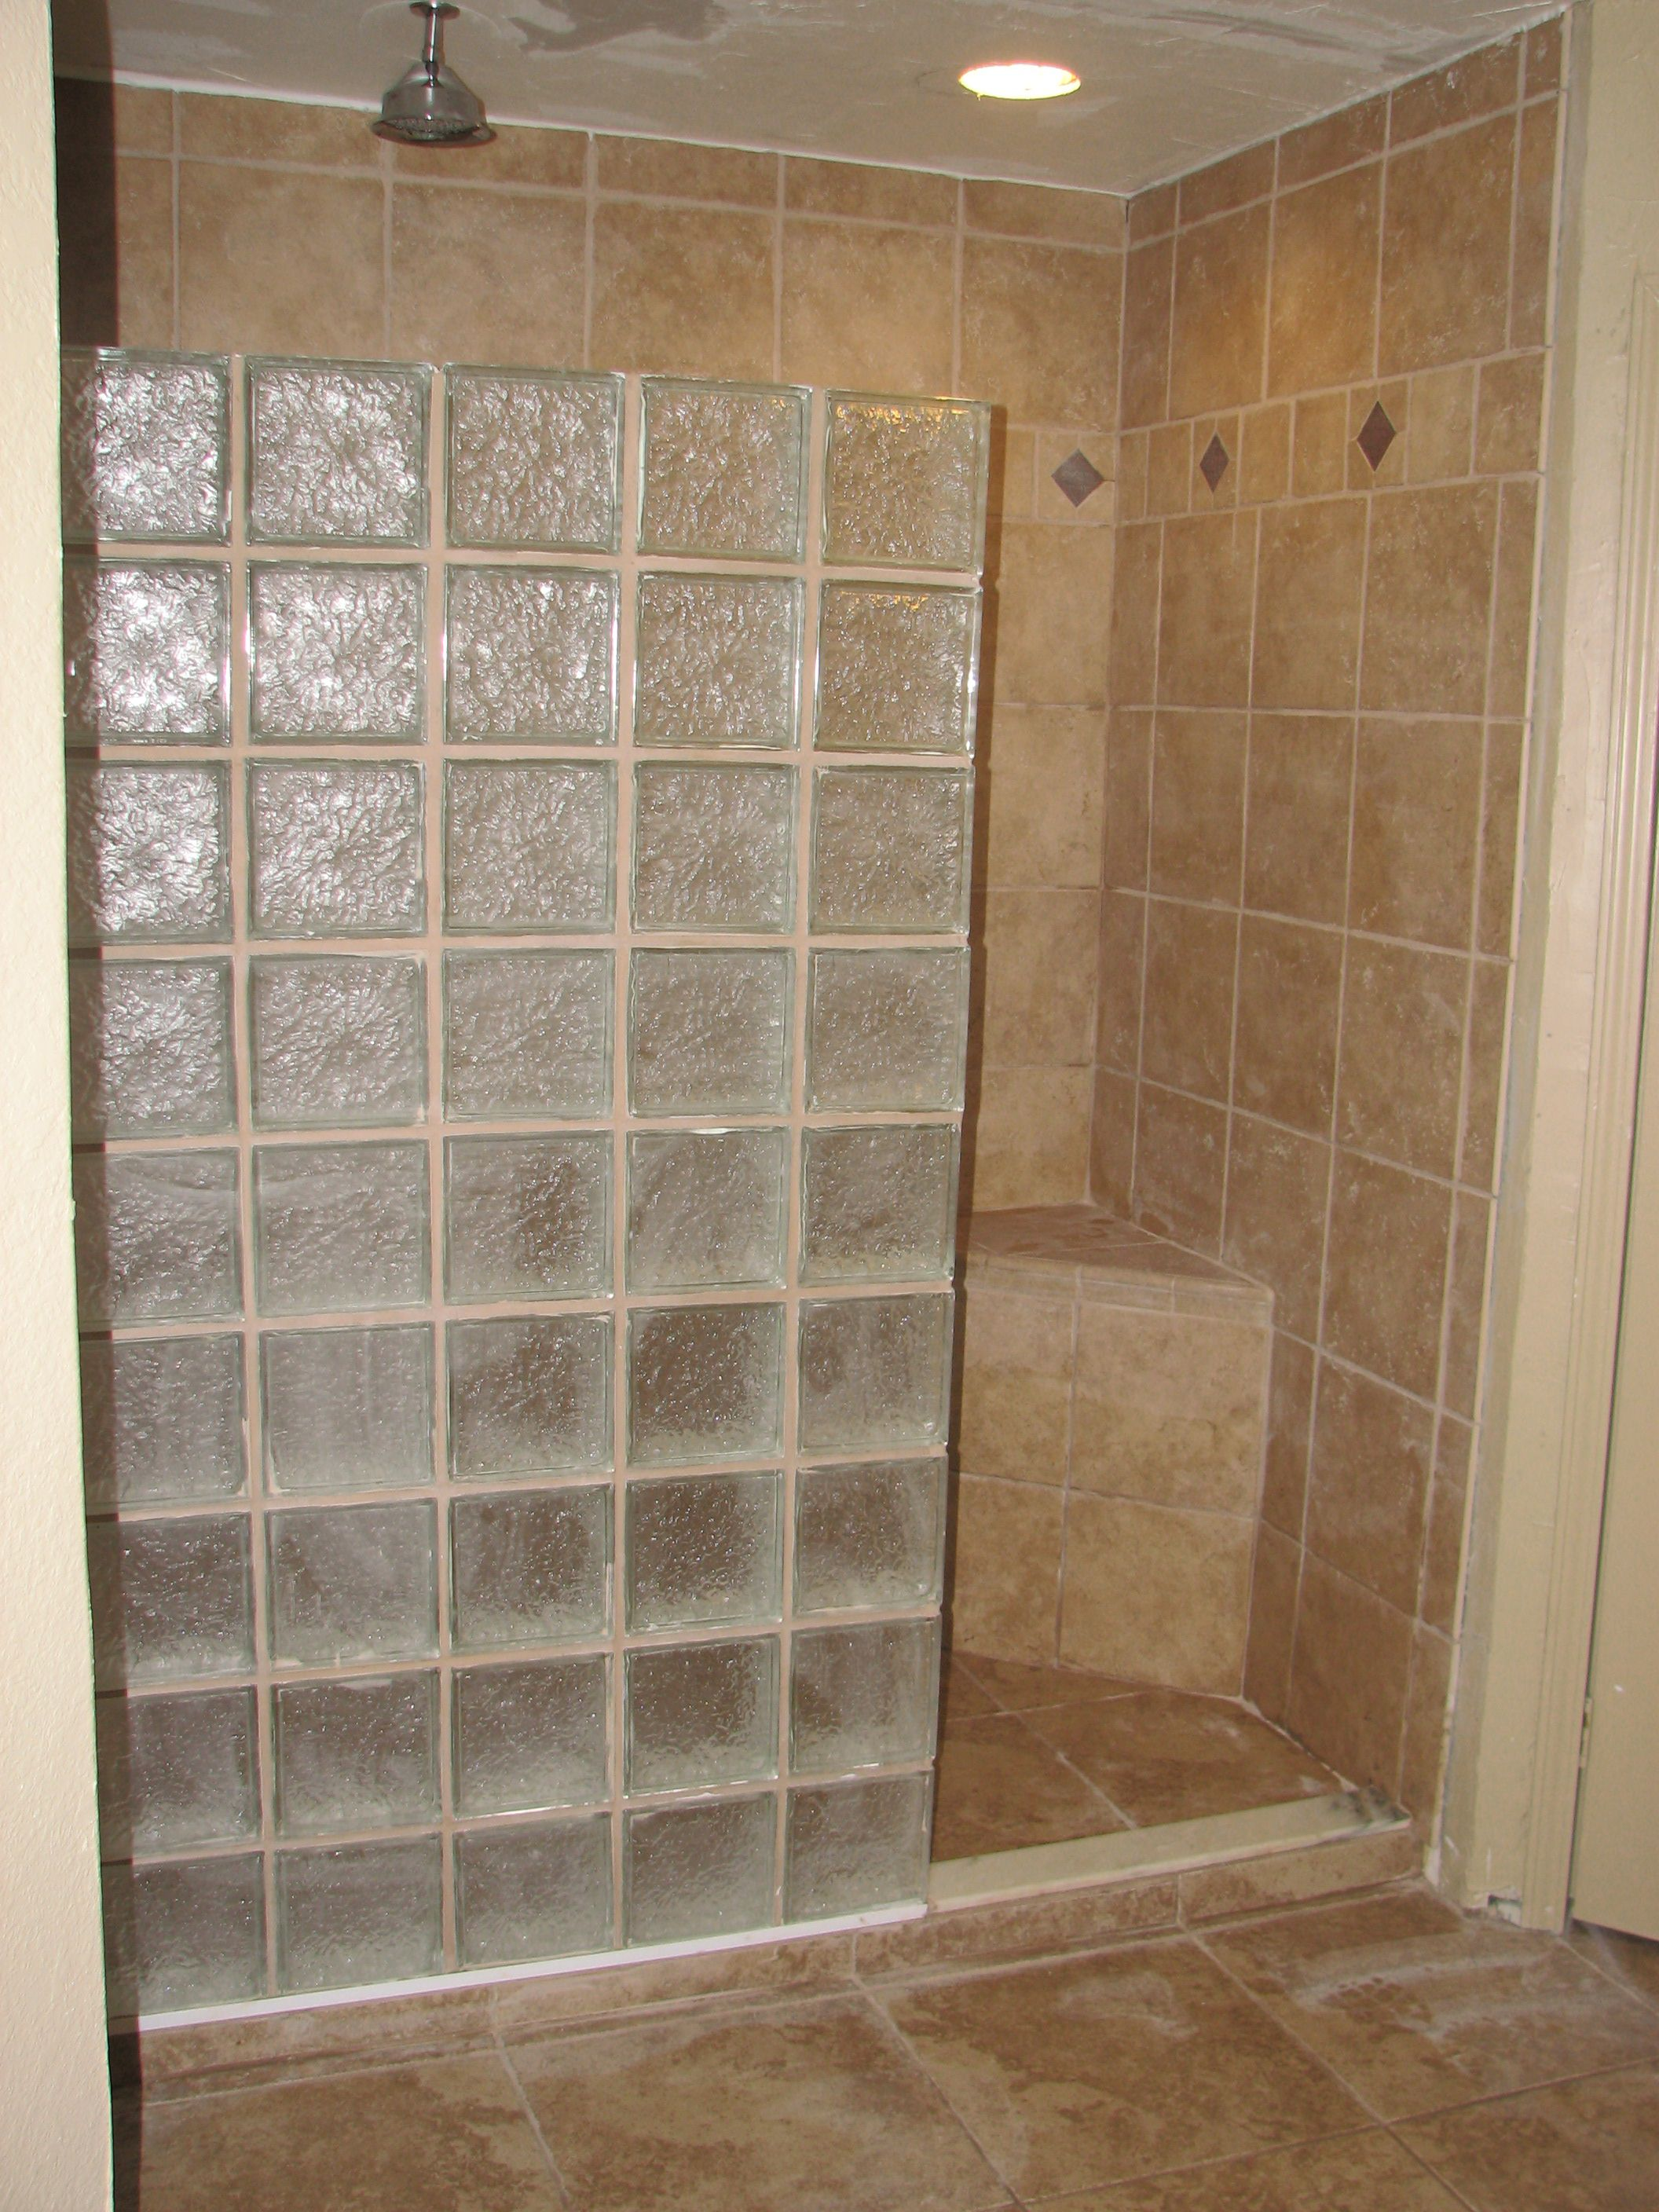 bathroom small bathroom remodeling bathroom remodel construction and handyman services shop small network bathroom renovations - Shower Design Ideas Small Bathroom